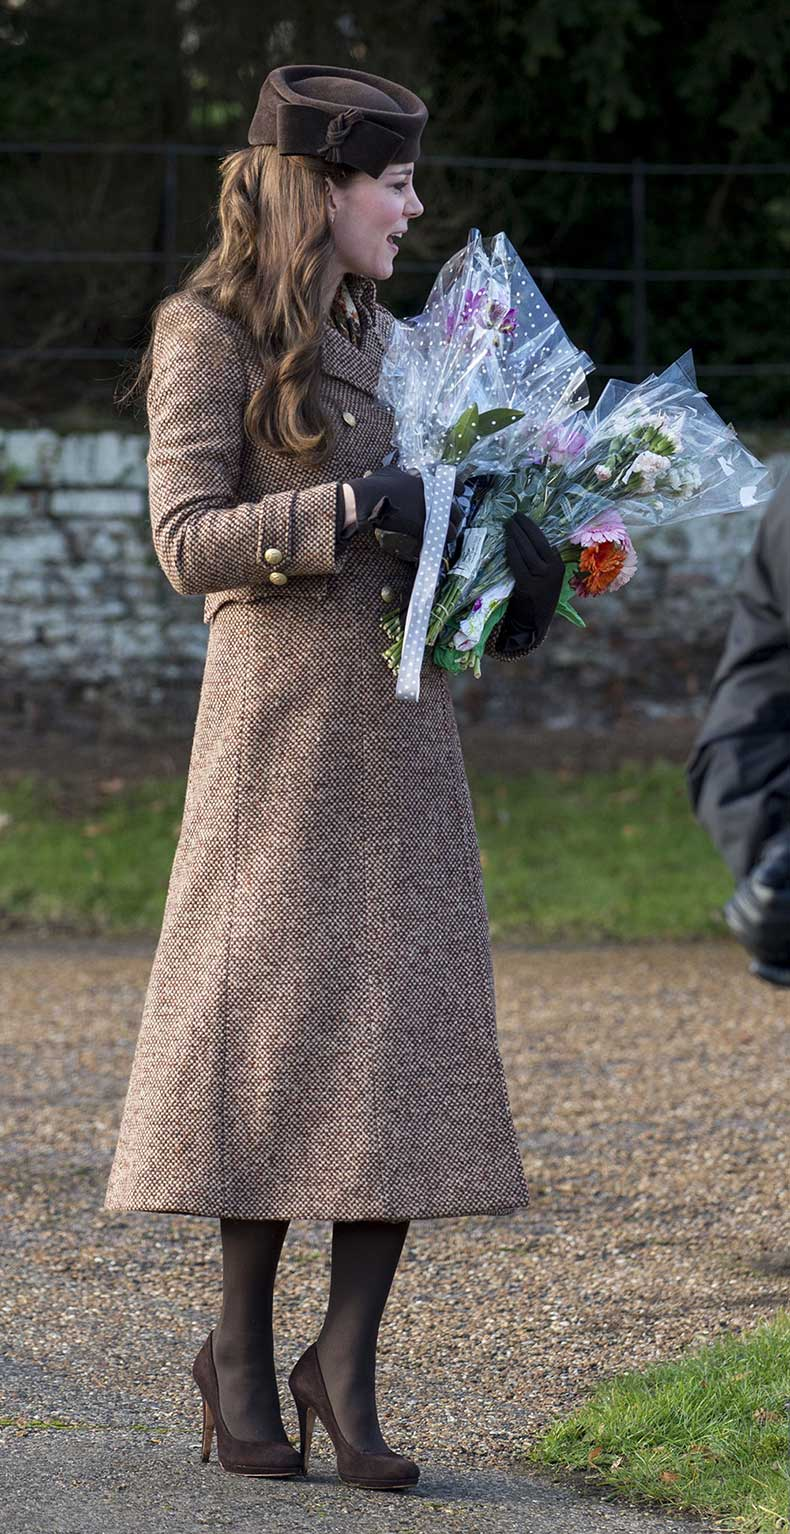 KATE-MIDDLETON-at-Christmas-Day-Service-in-Sandringham-5